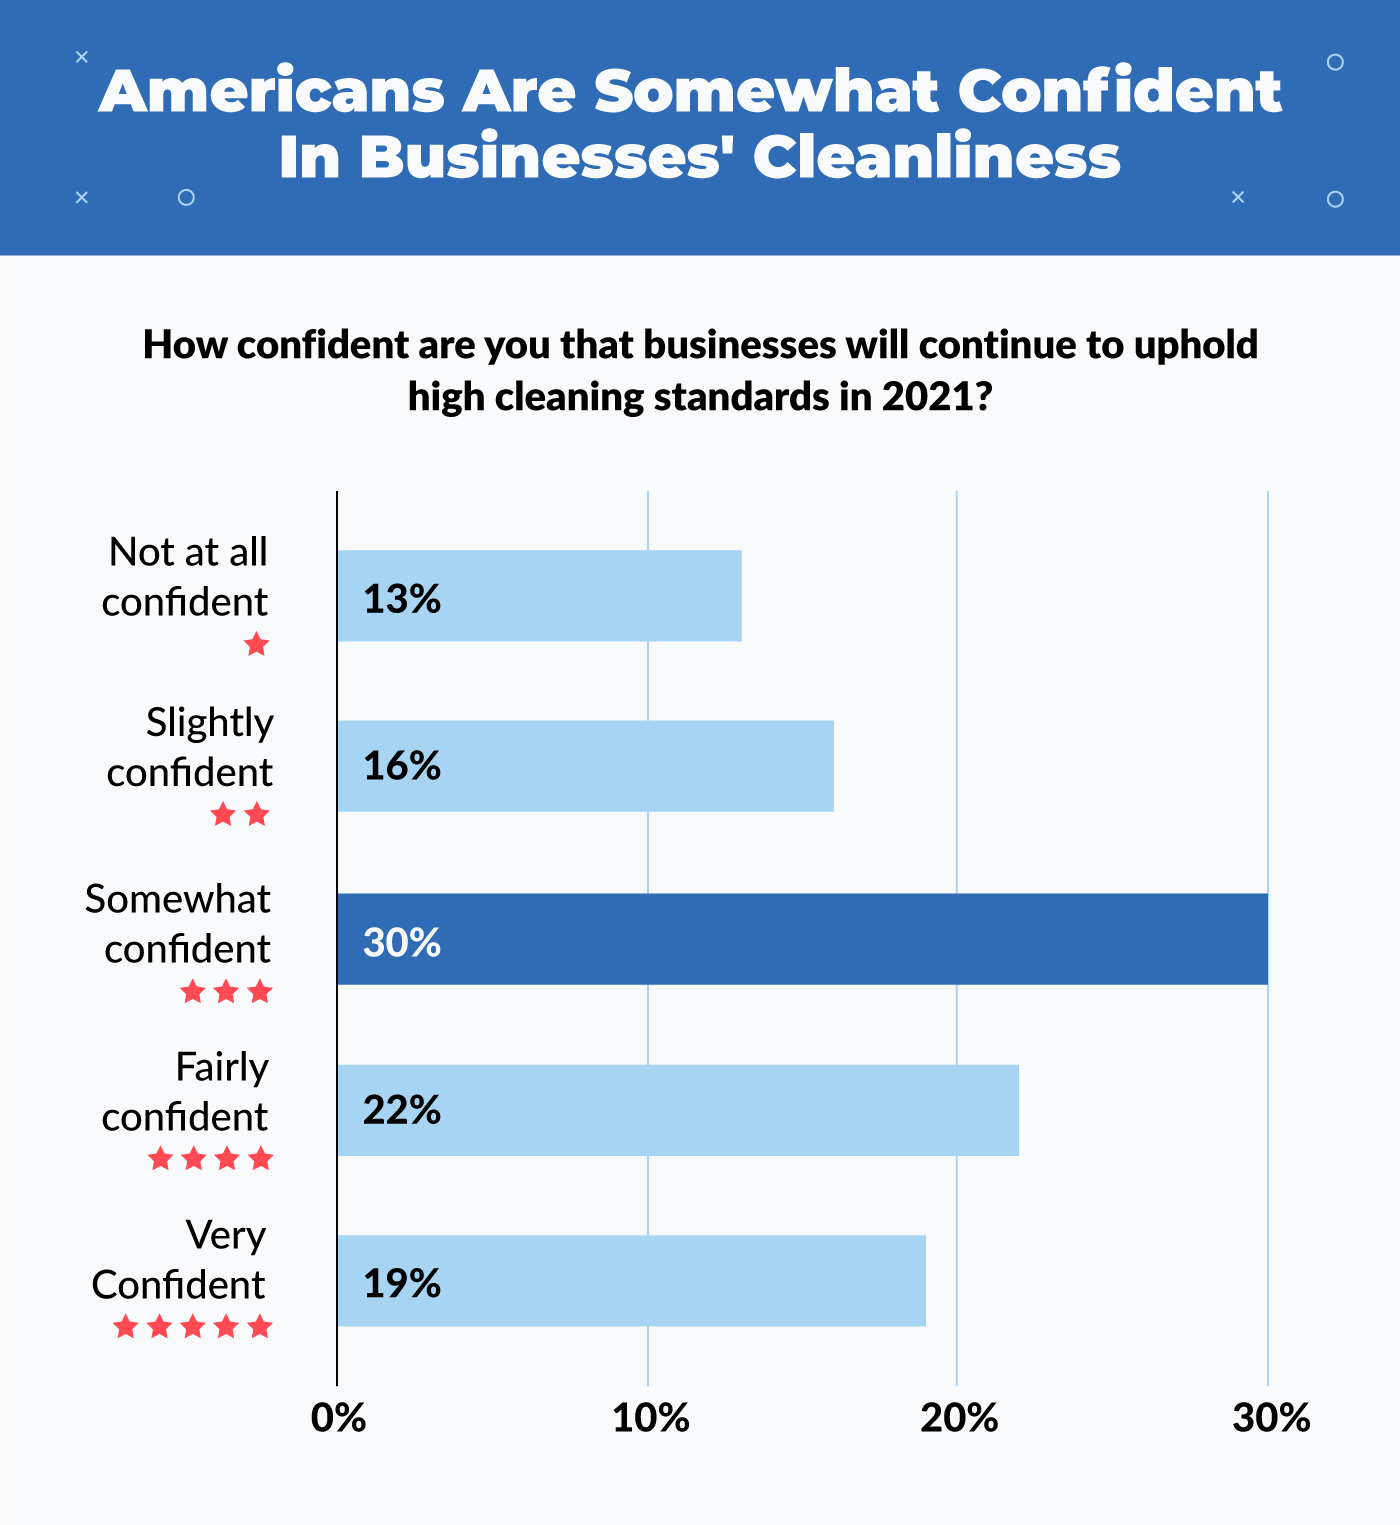 Americans are somewhat confident in business' cleanliness